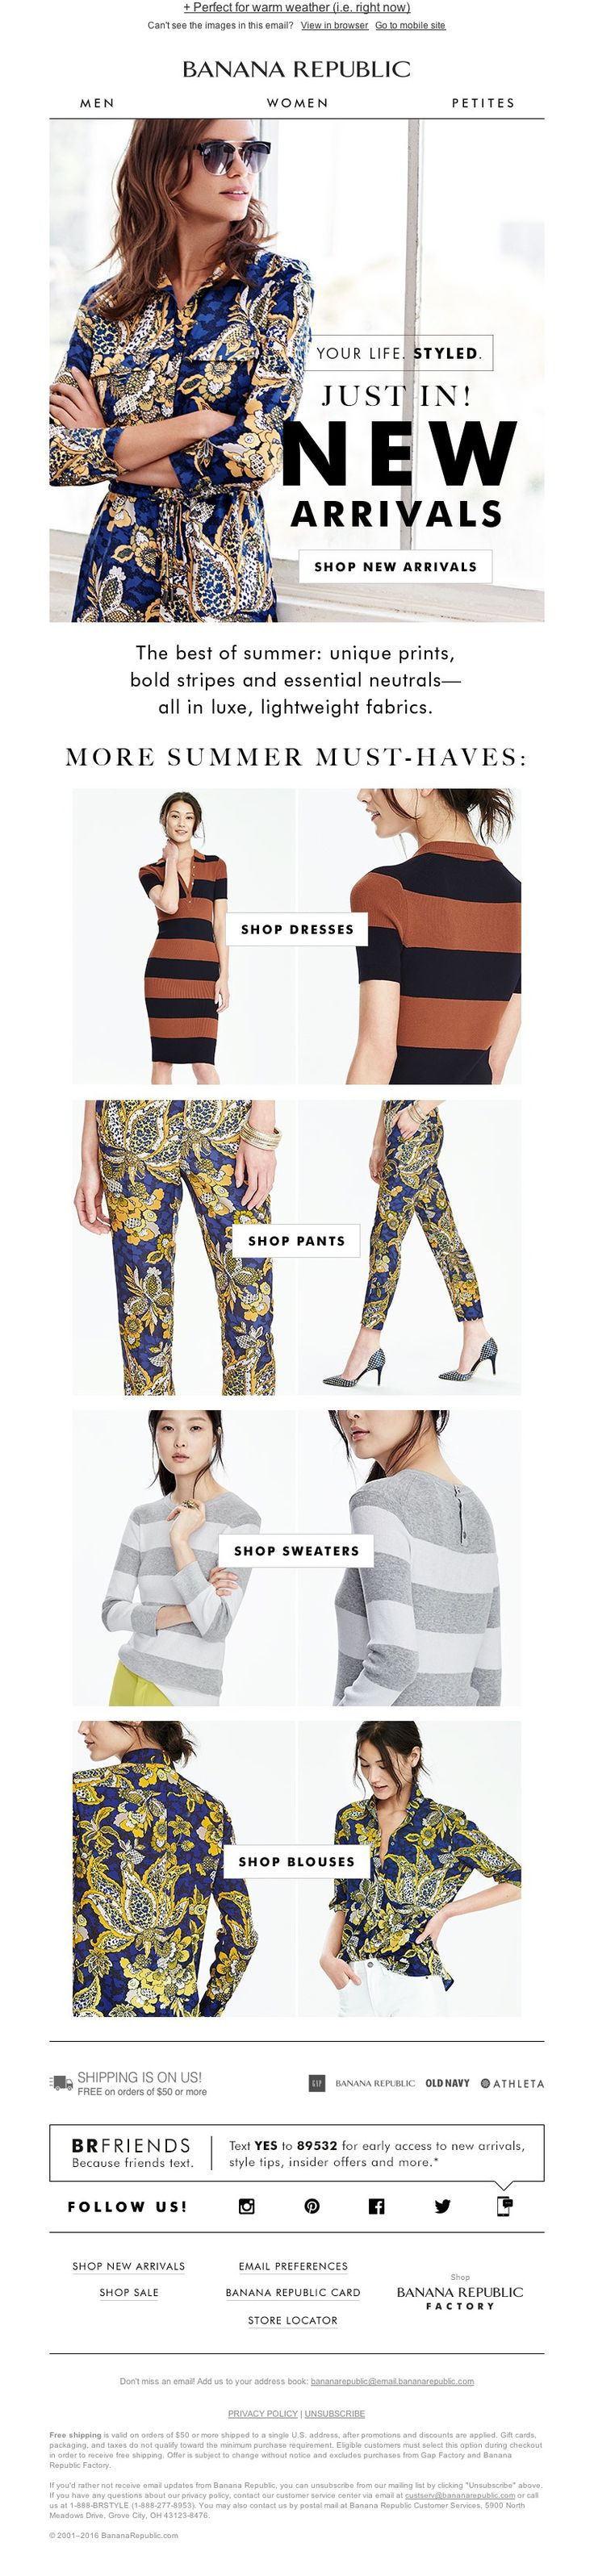 Banana Republic - New arrivals you'll love to wear